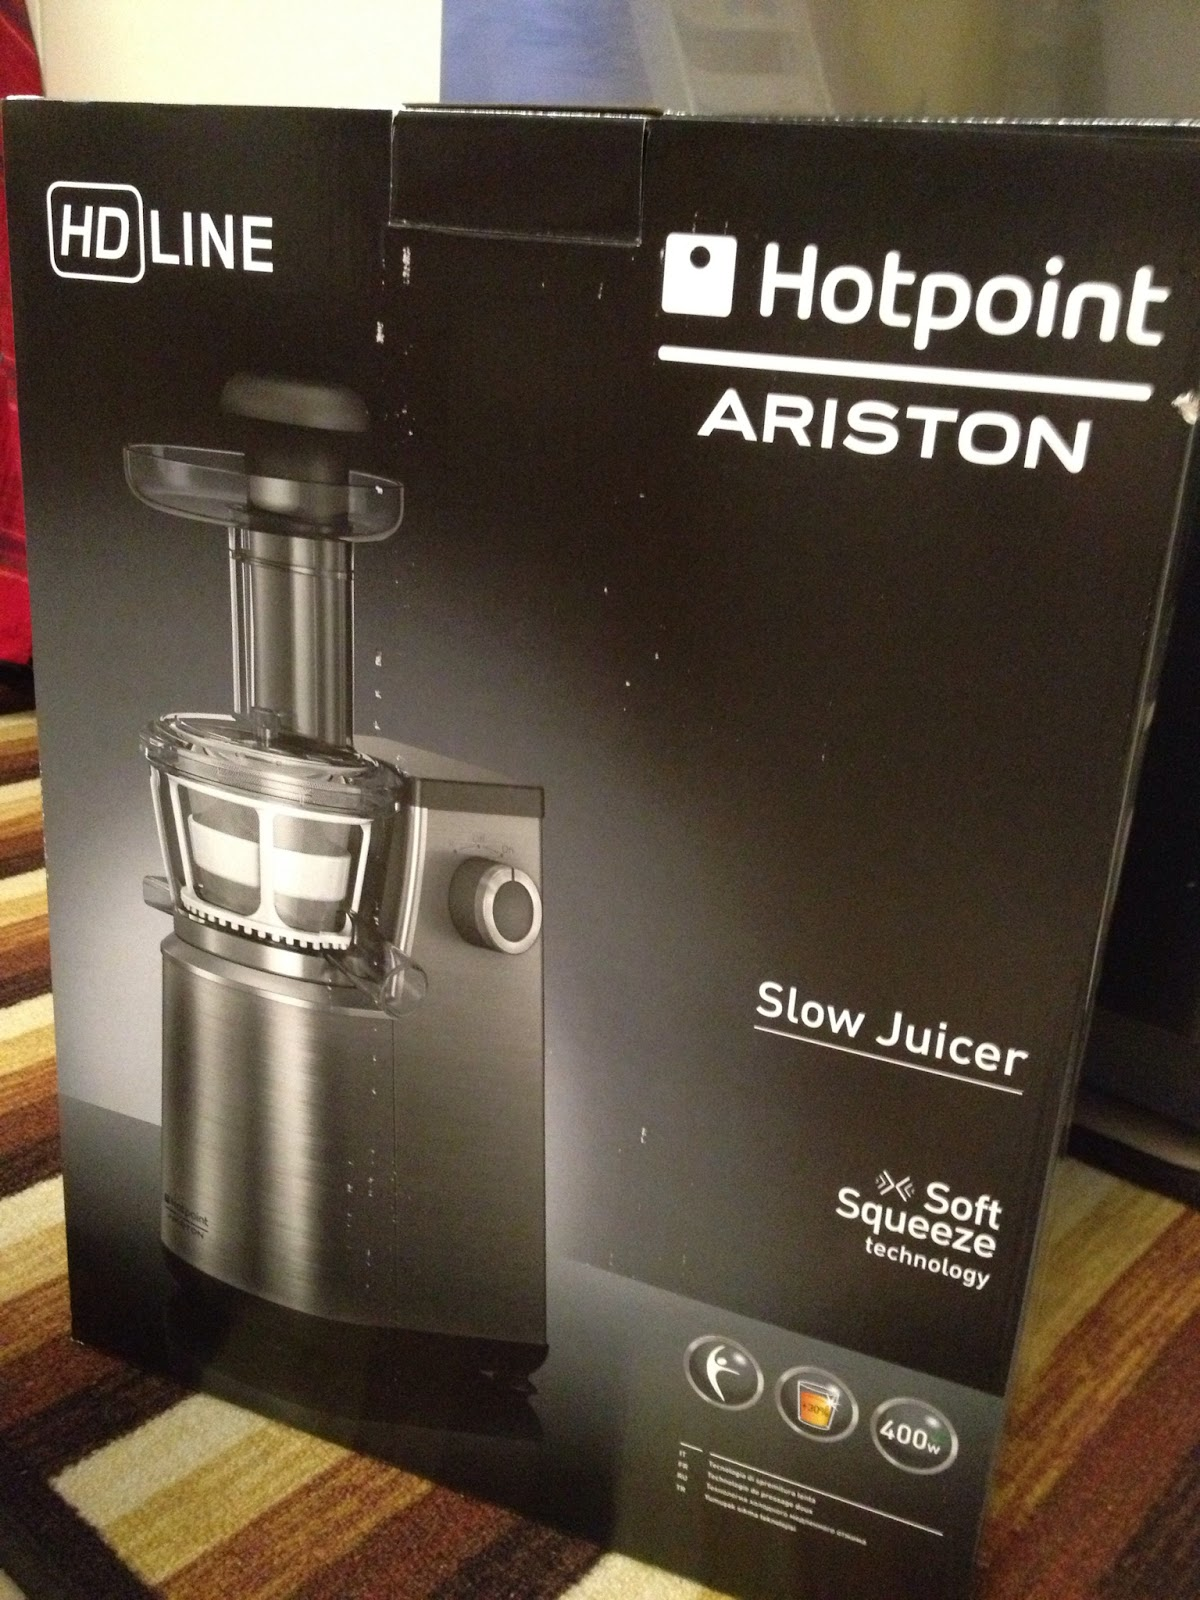 Hotpoint Sj15xlup0 Slow Juicer Estrattore : ????Hotpoint ariston Slow juicer - ??,????